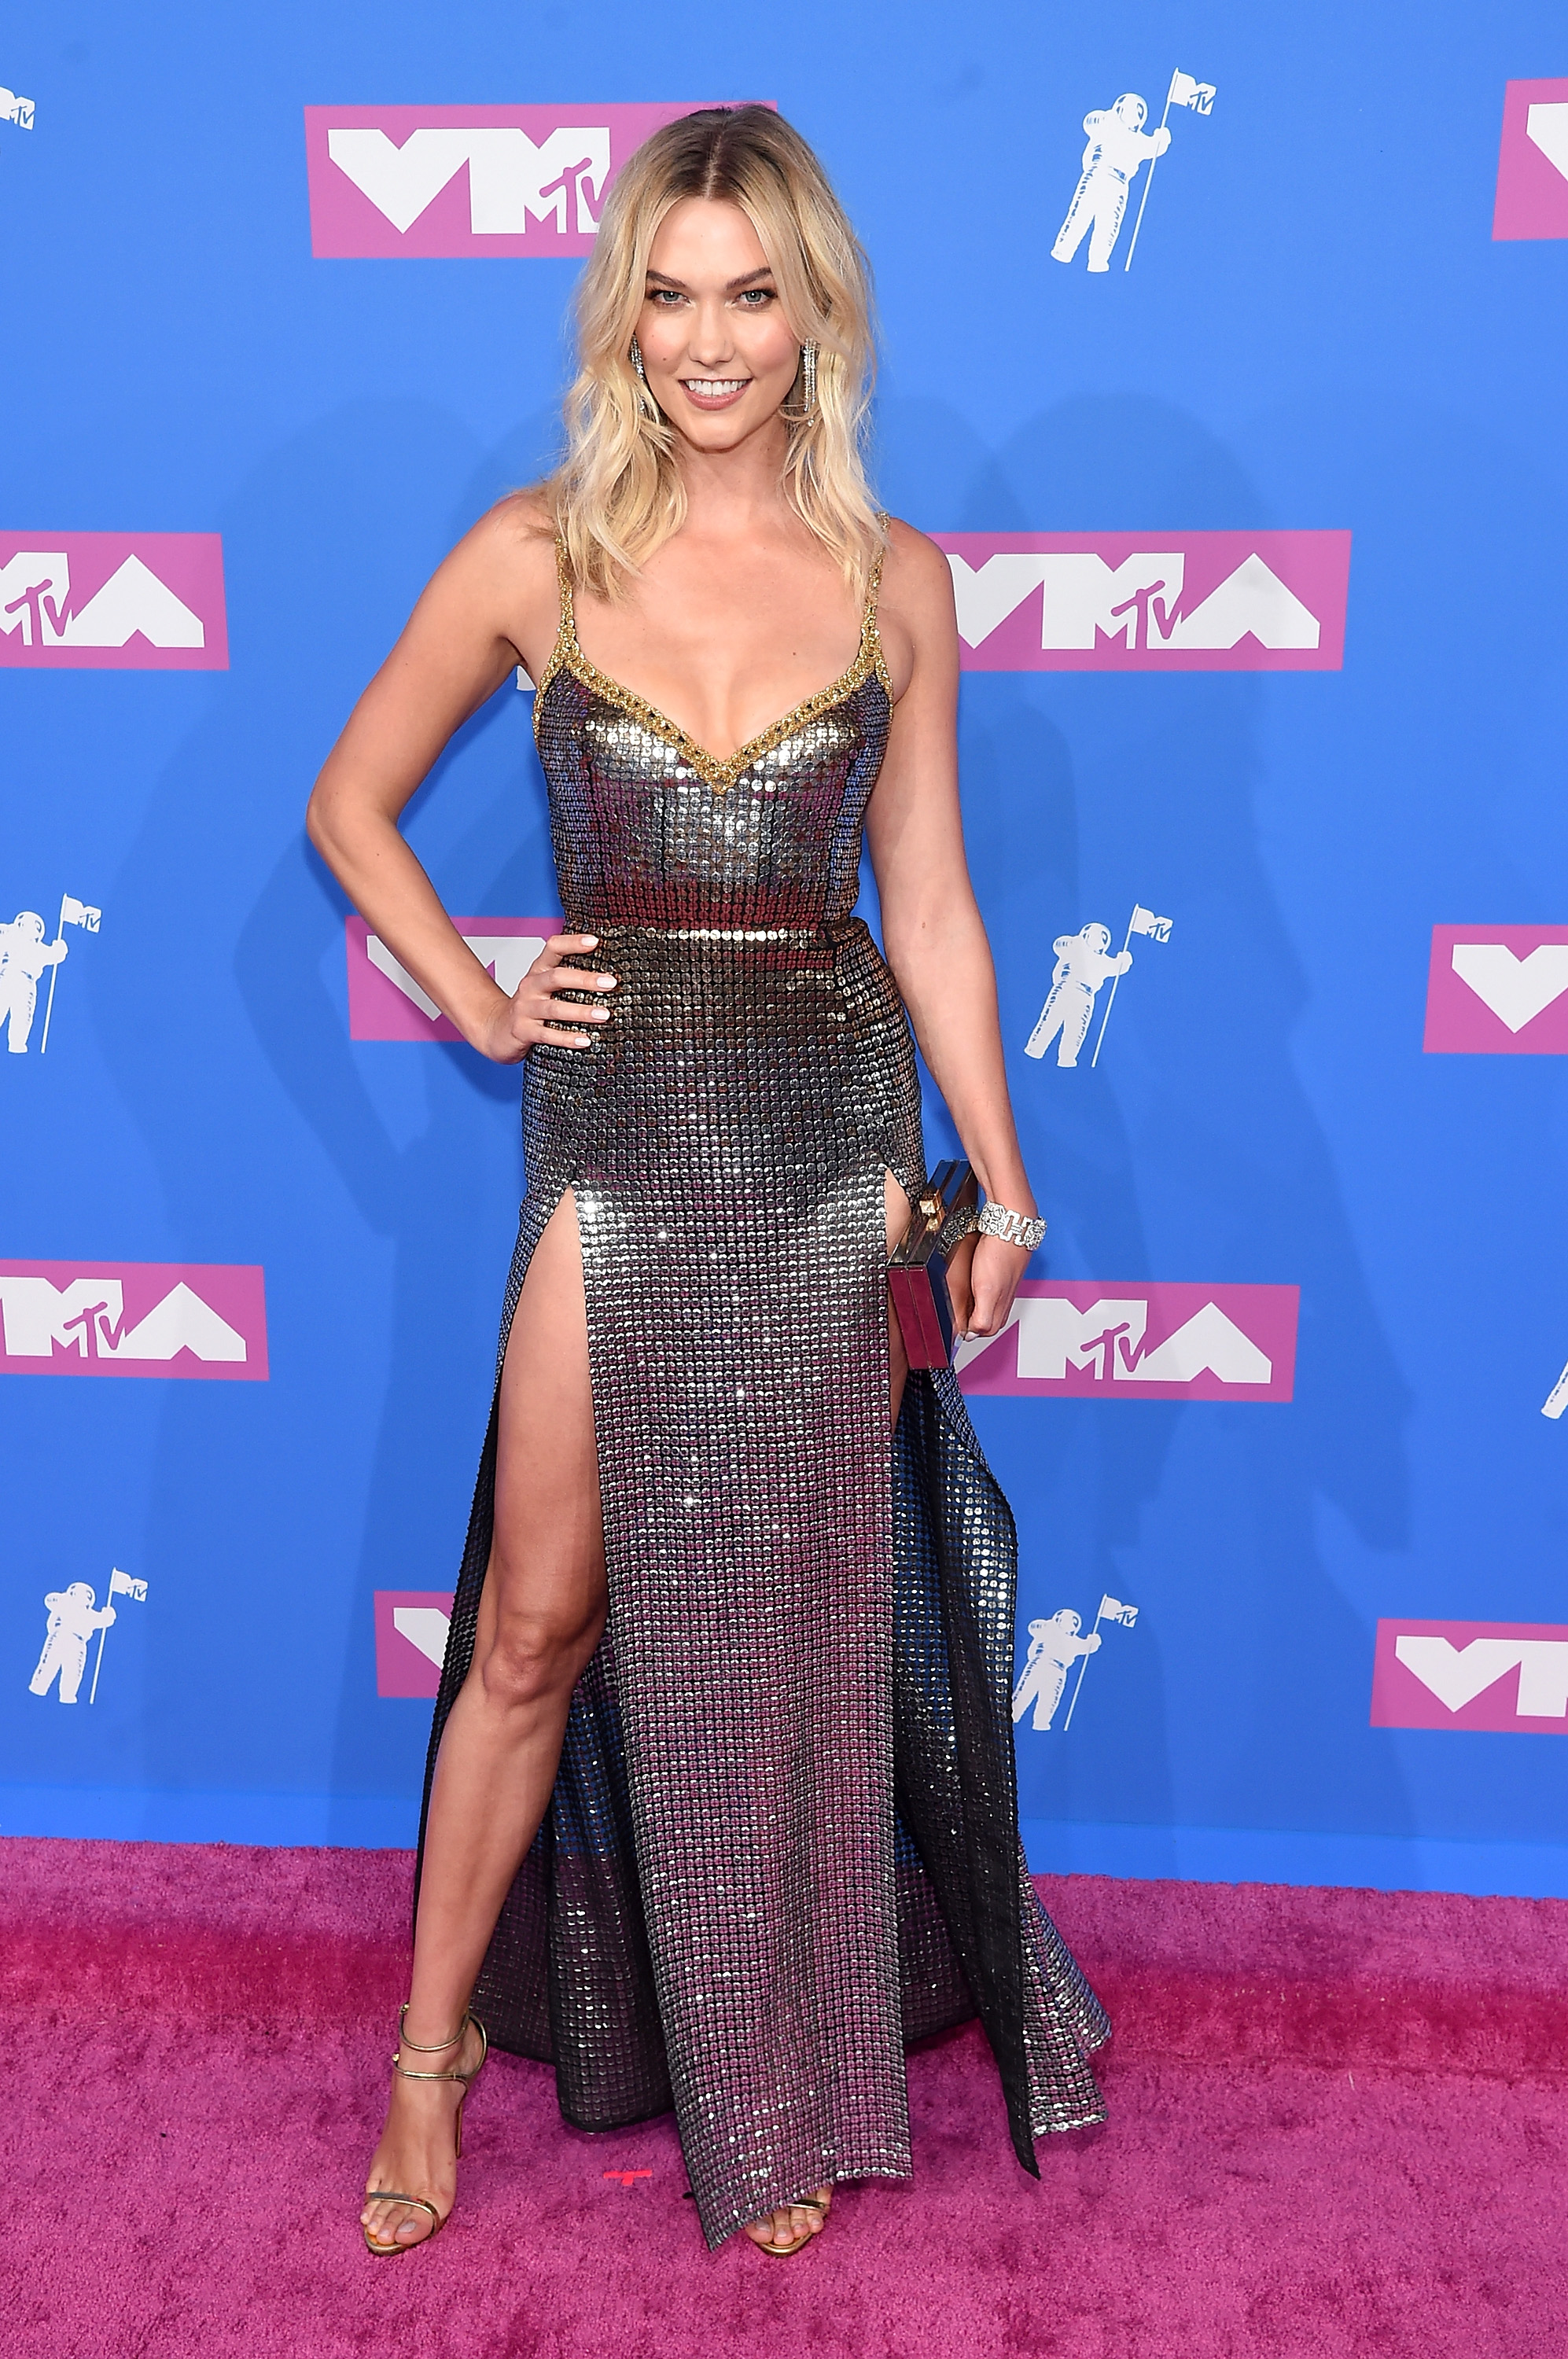 Karlie Kloss attends the 2018 MTV Video Music Awards at Radio City Music Hall on August 20, 2018 in New York City.